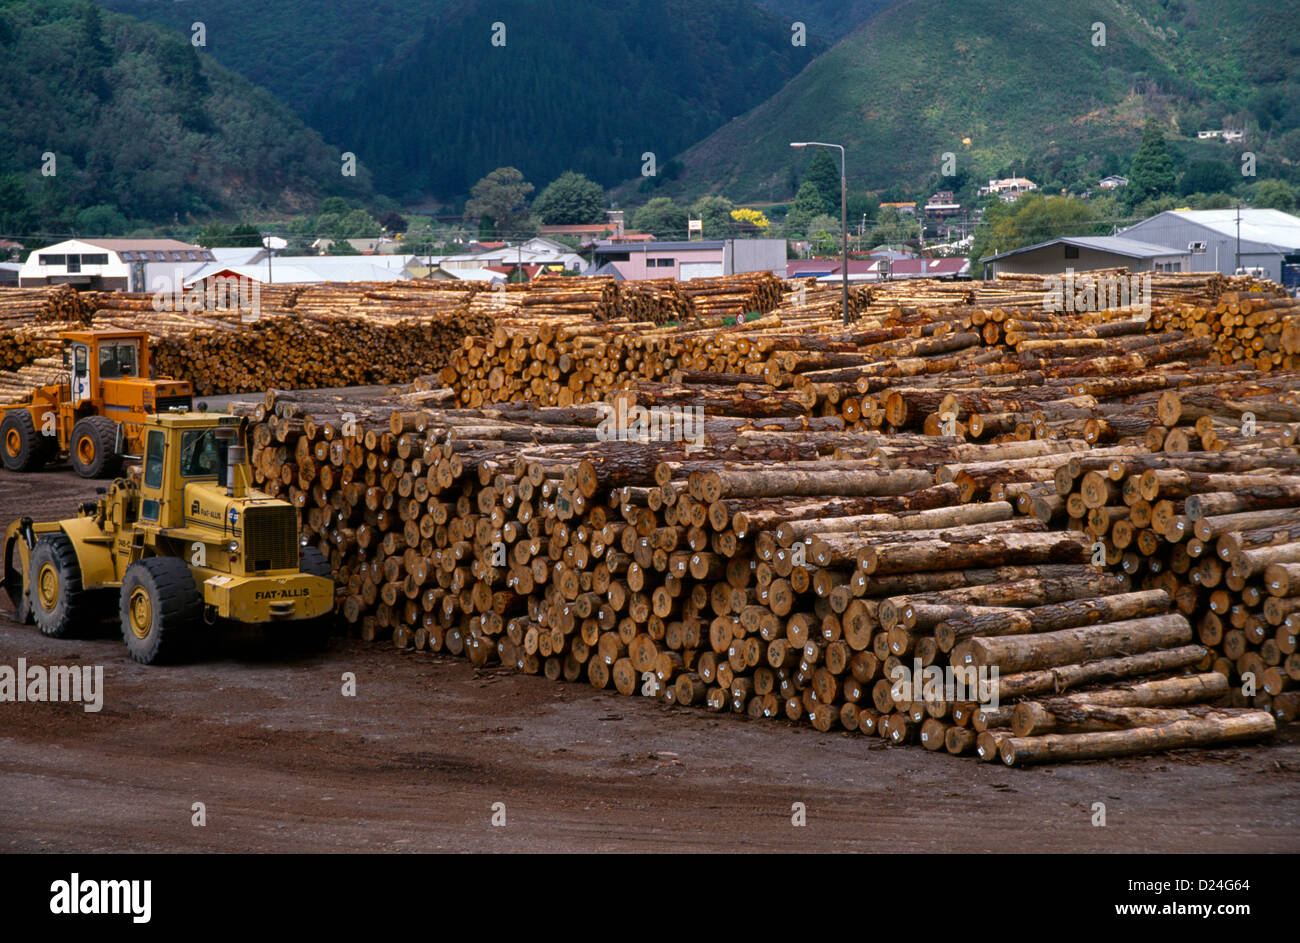 New Zealand Picton Wood Exports - Stacks of Timber Logs & Machinery - Stock Image